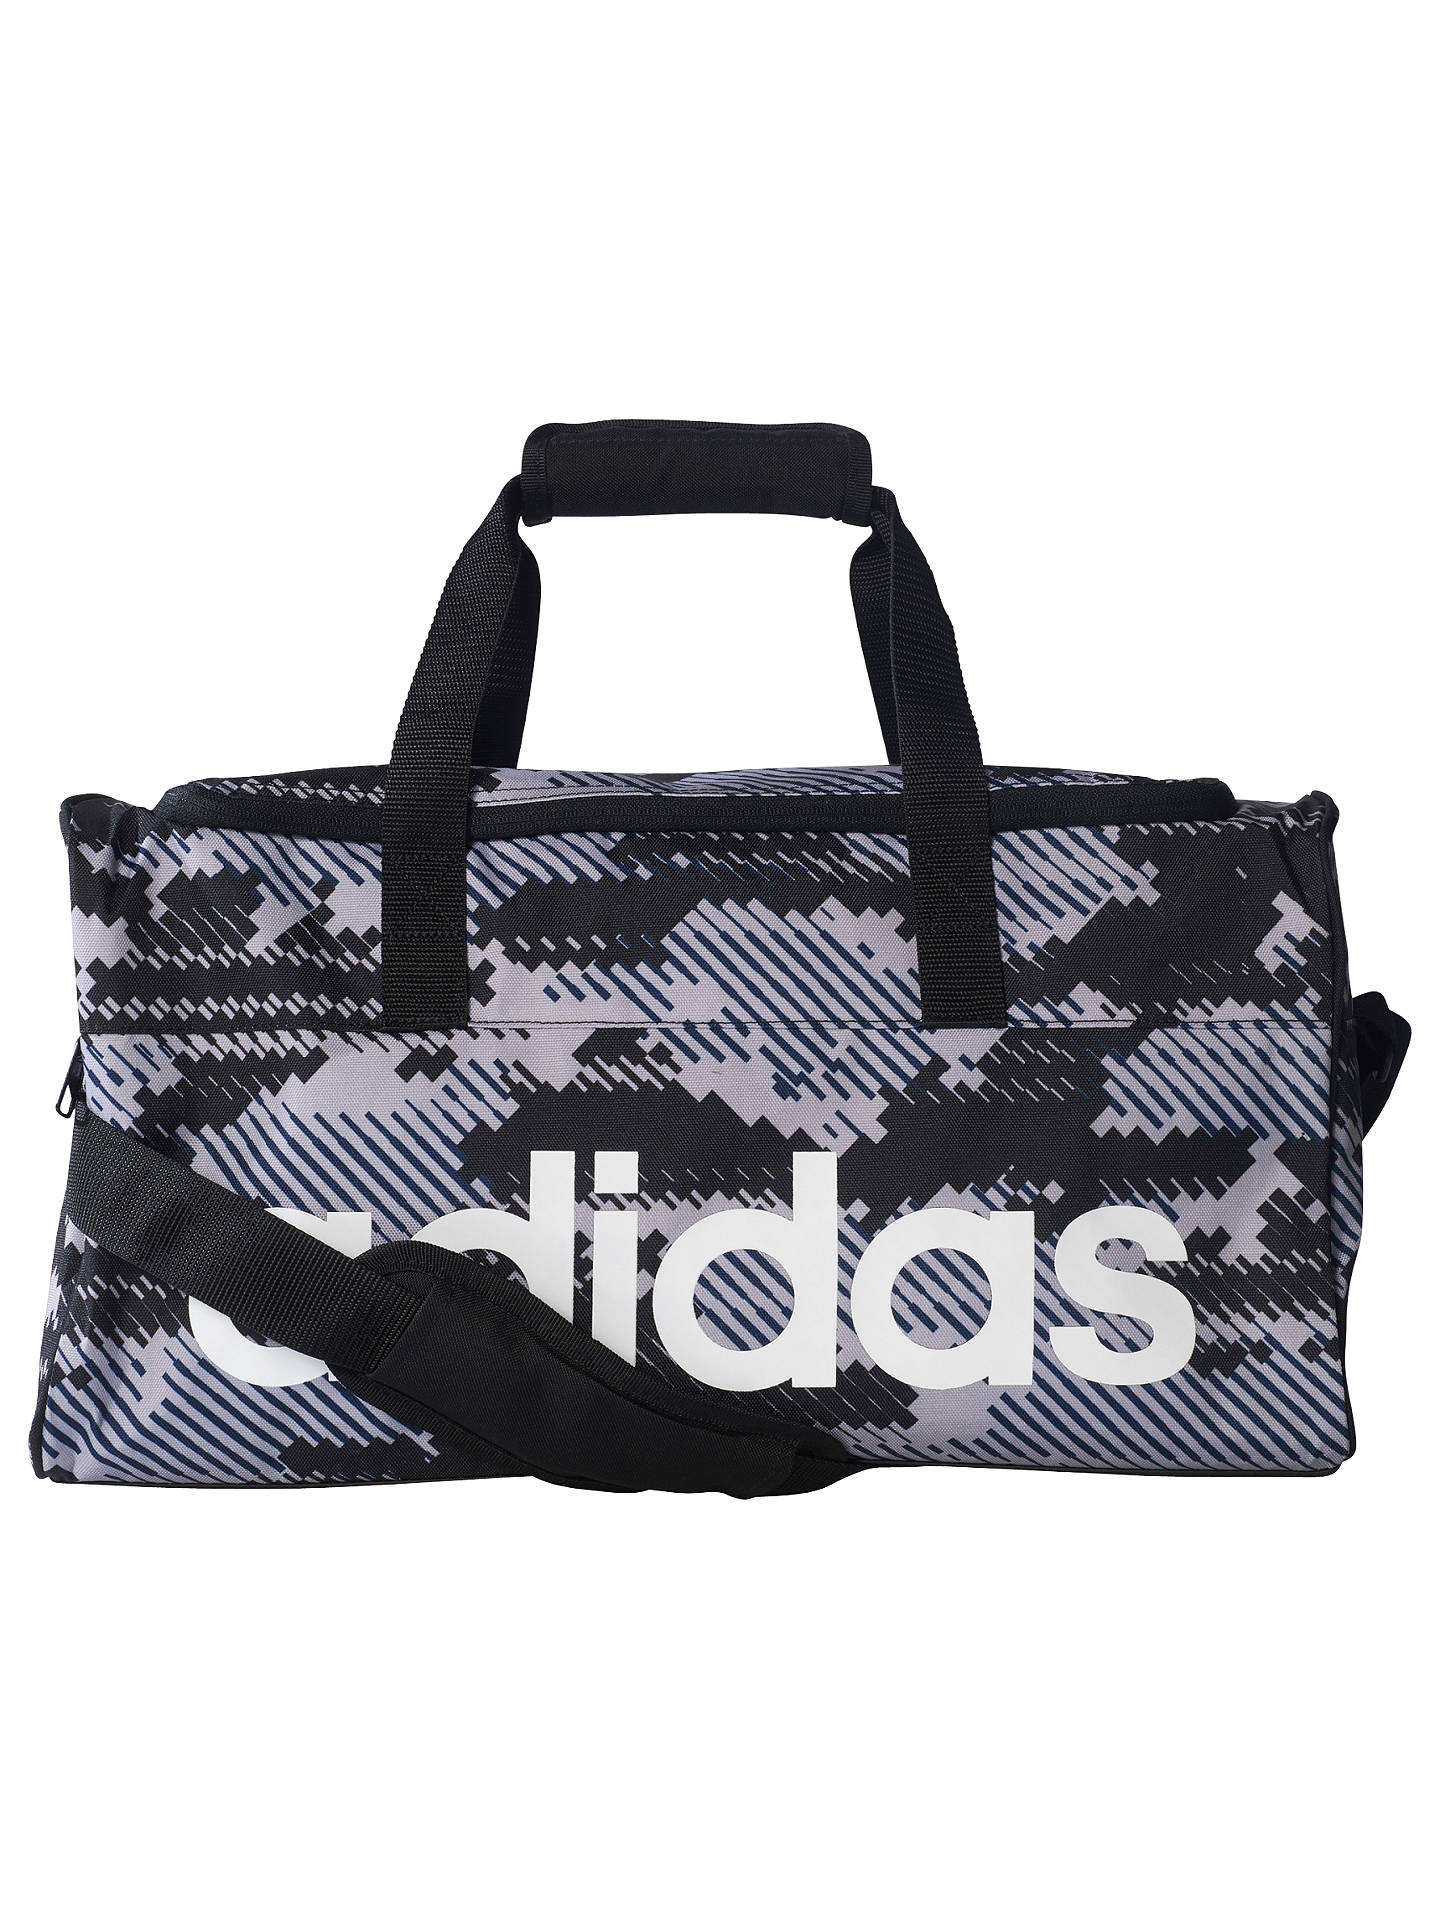 c46c1f3398 Buy Adidas Linear Performance Team Bag